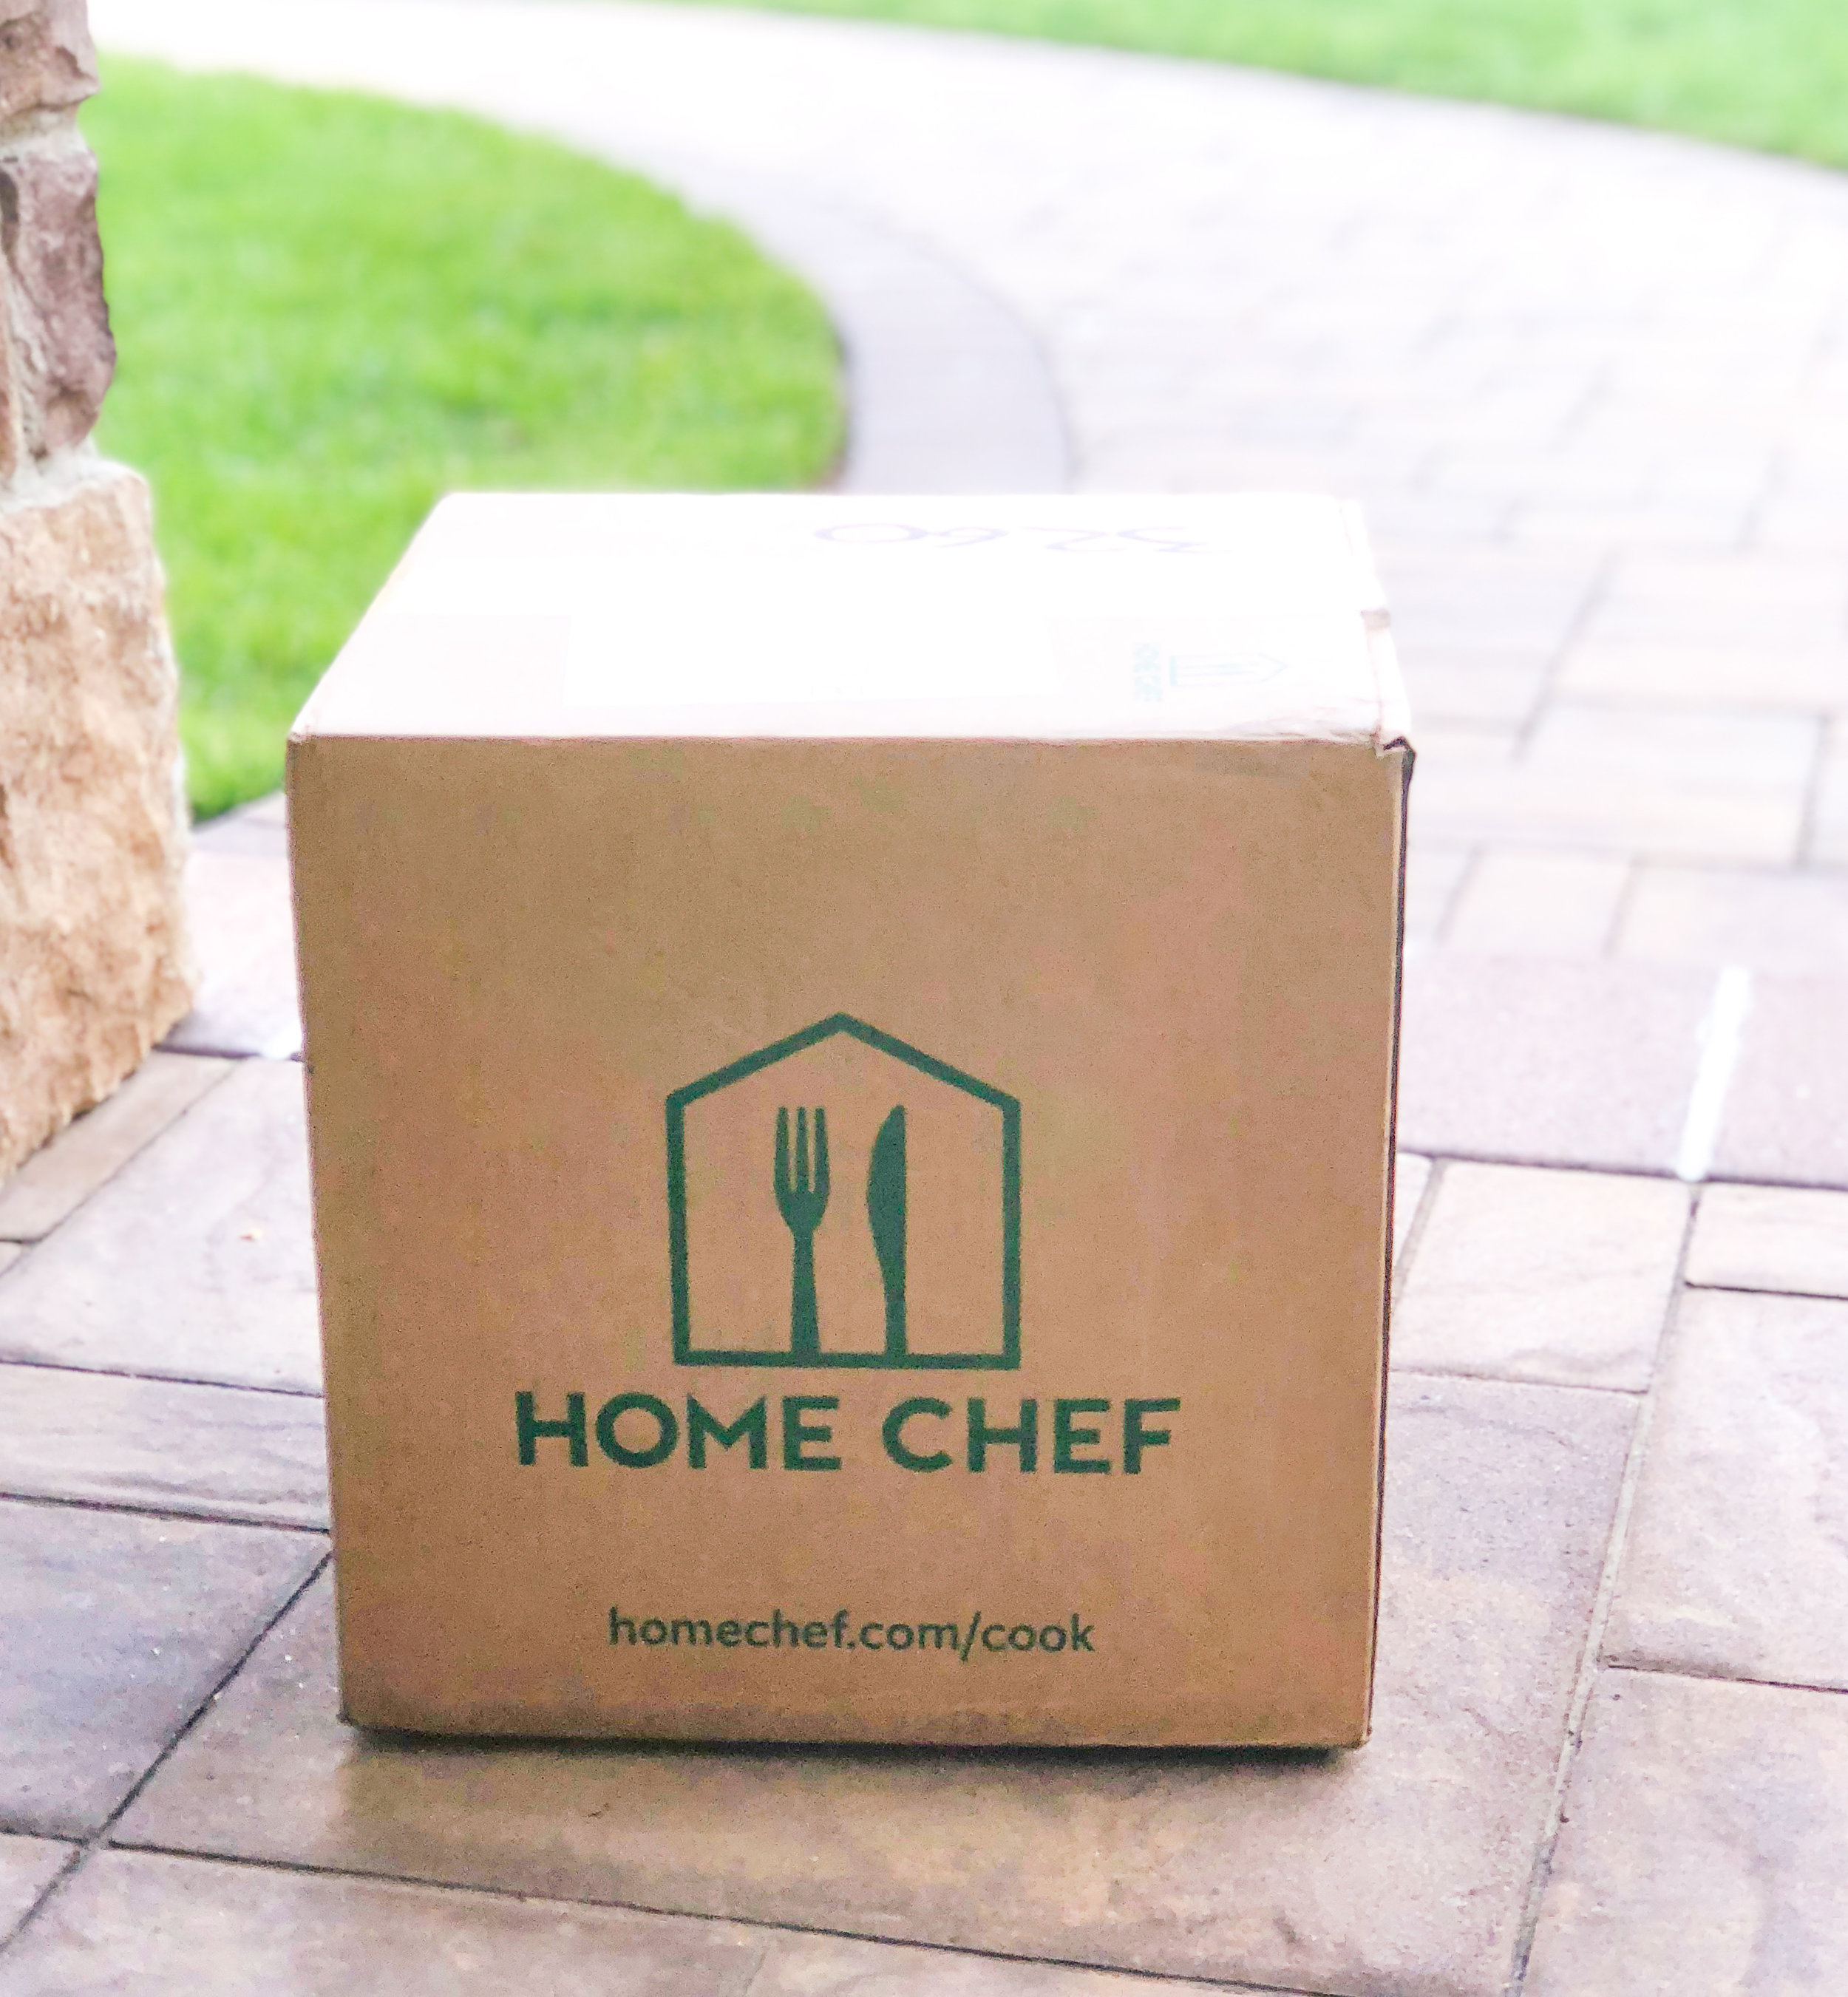 home chef delivery box.jpg